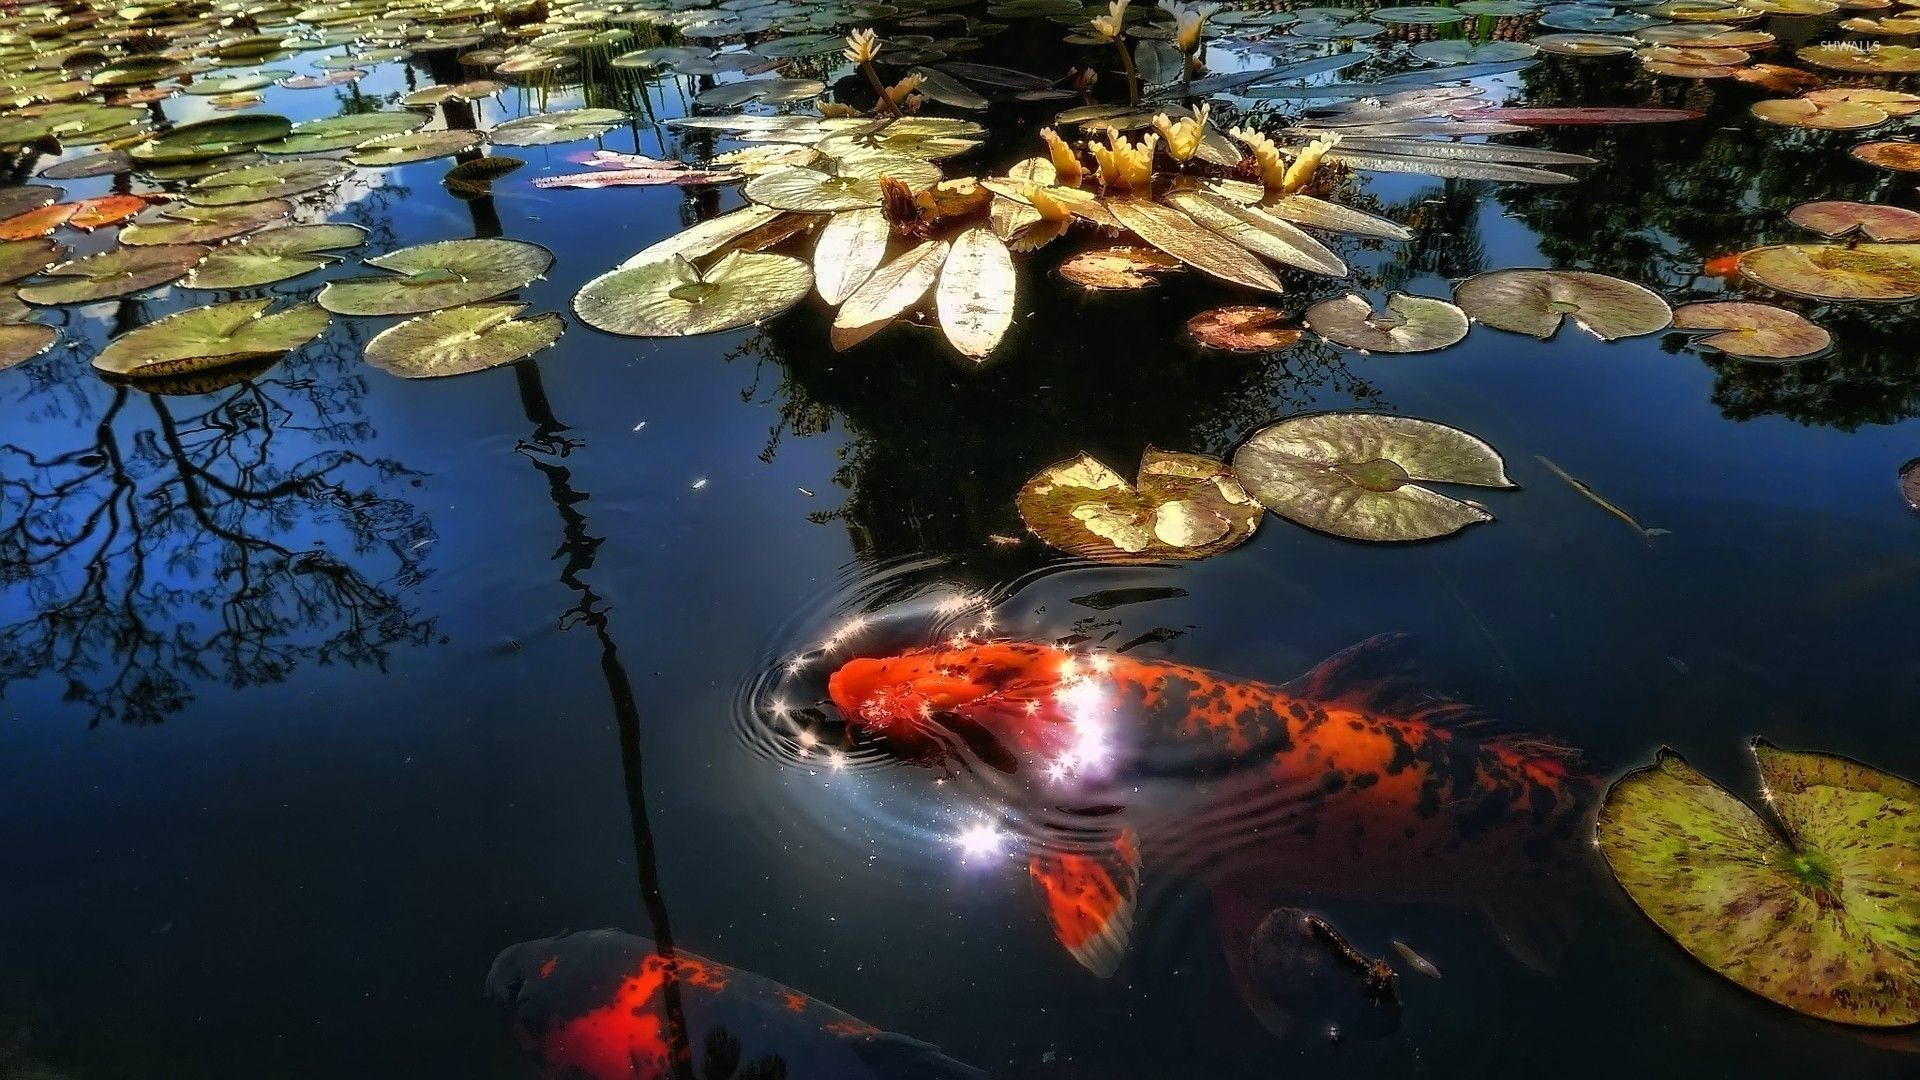 1920x1080 Koi fish in the pond wallpaper